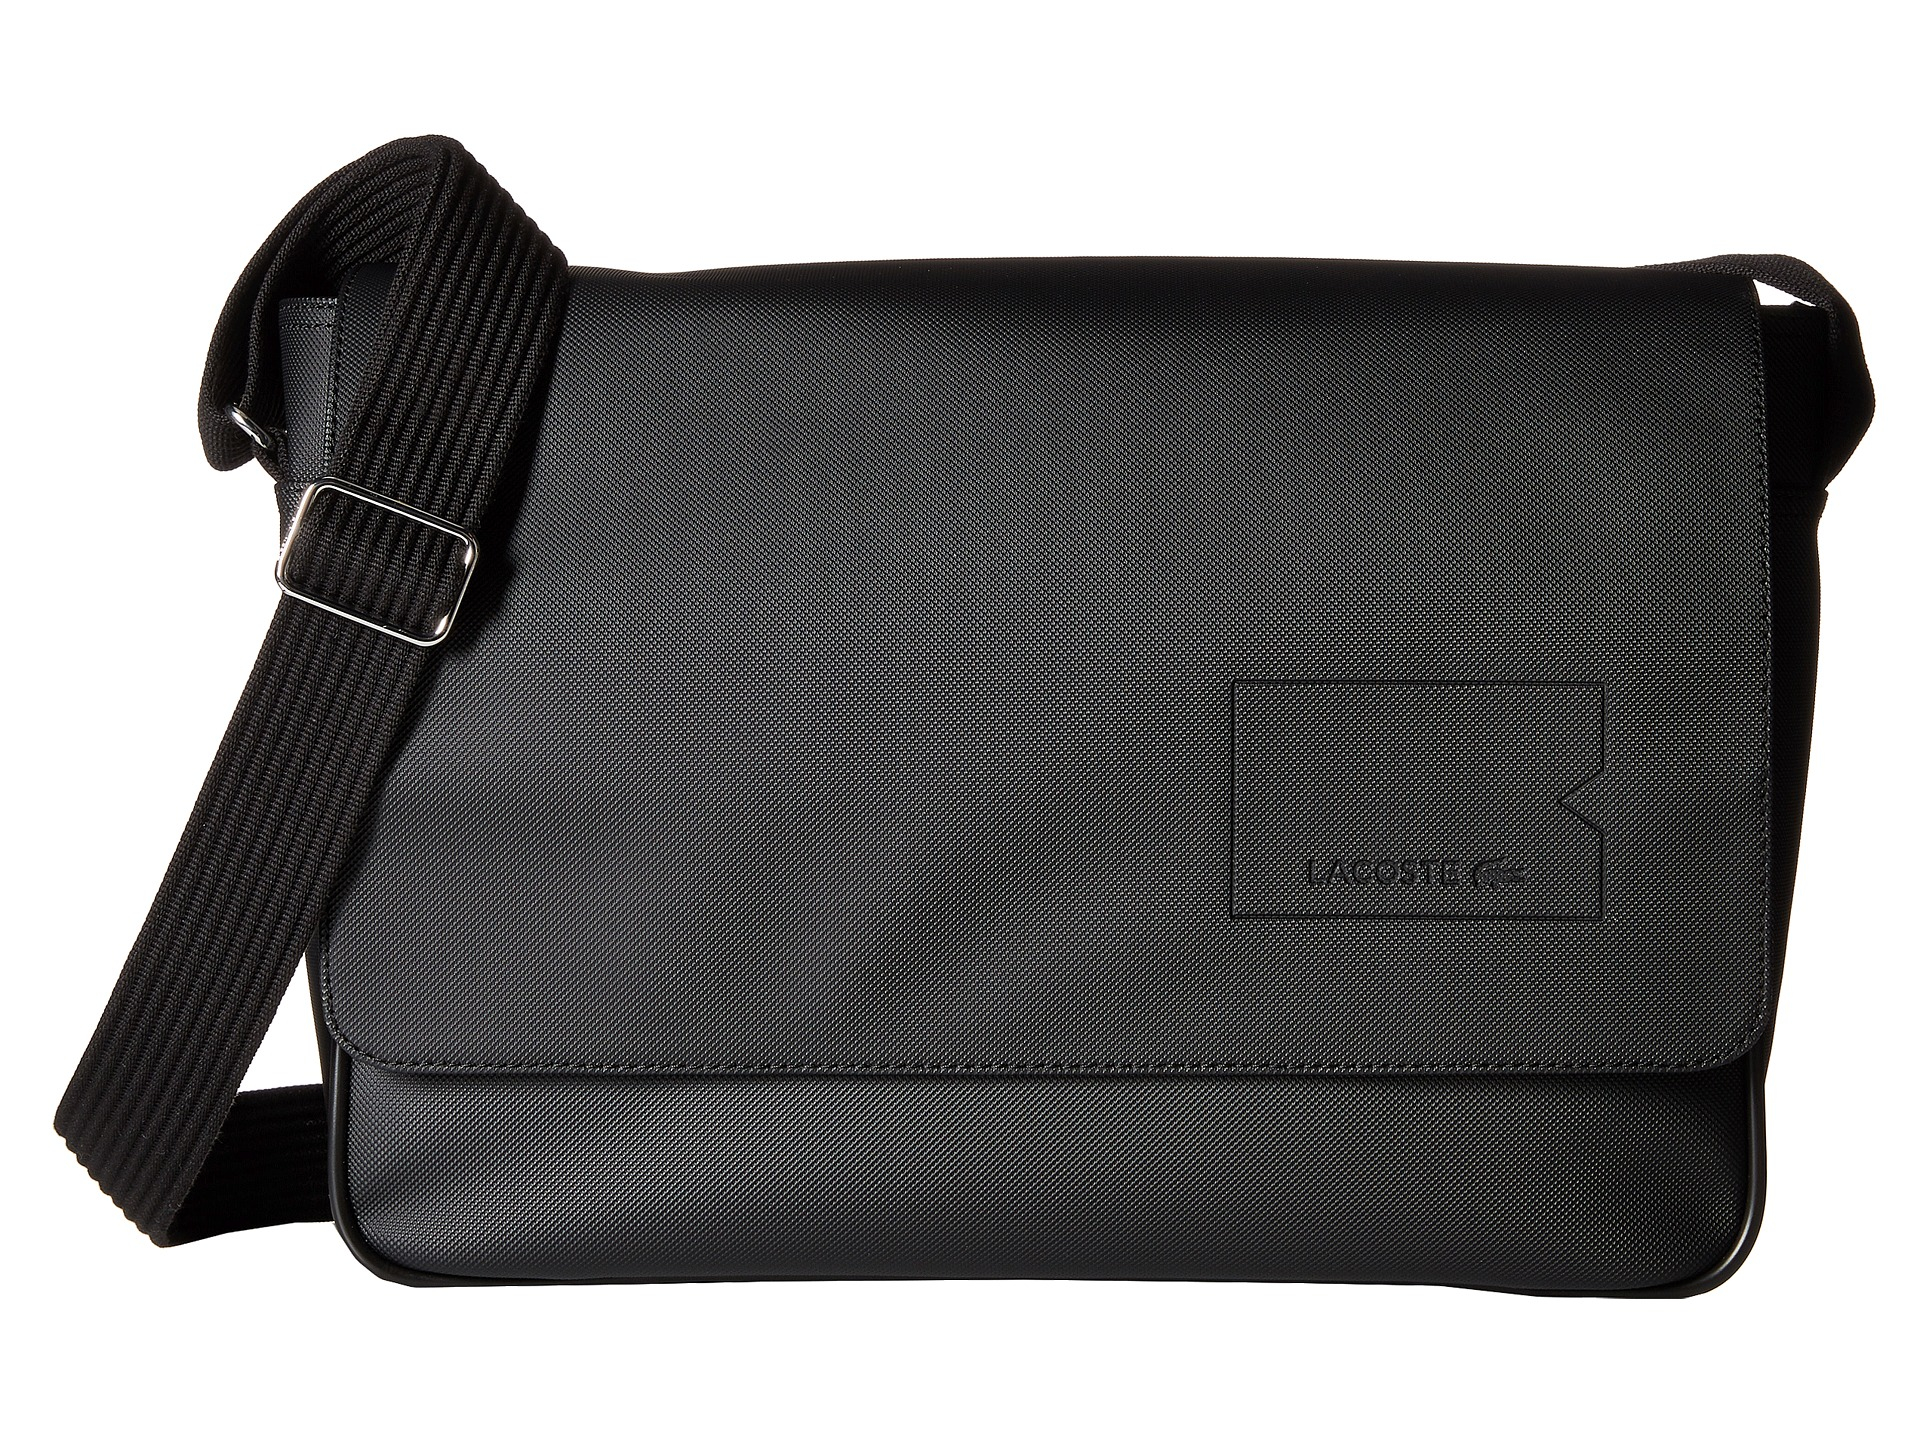 5bbbac01a Lyst - Lacoste Classic Messenger Bag in Black for Men